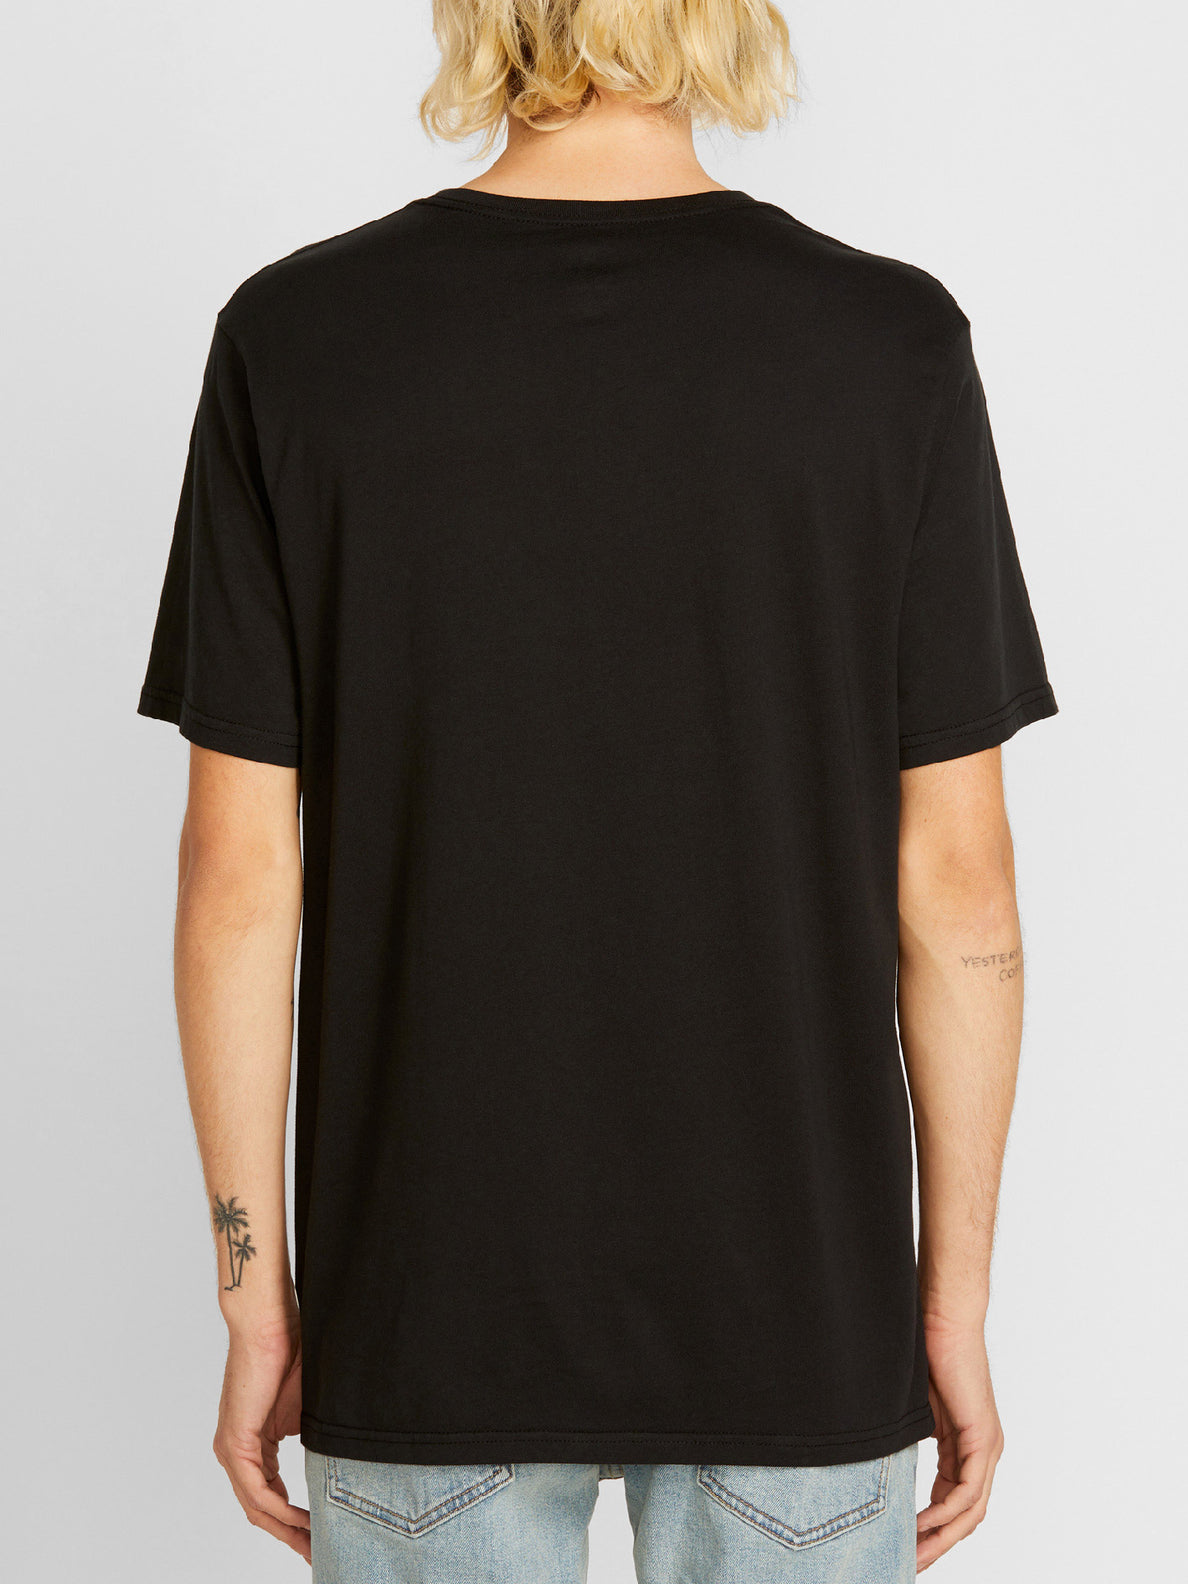 Circle Short Sleeve Tee - Black